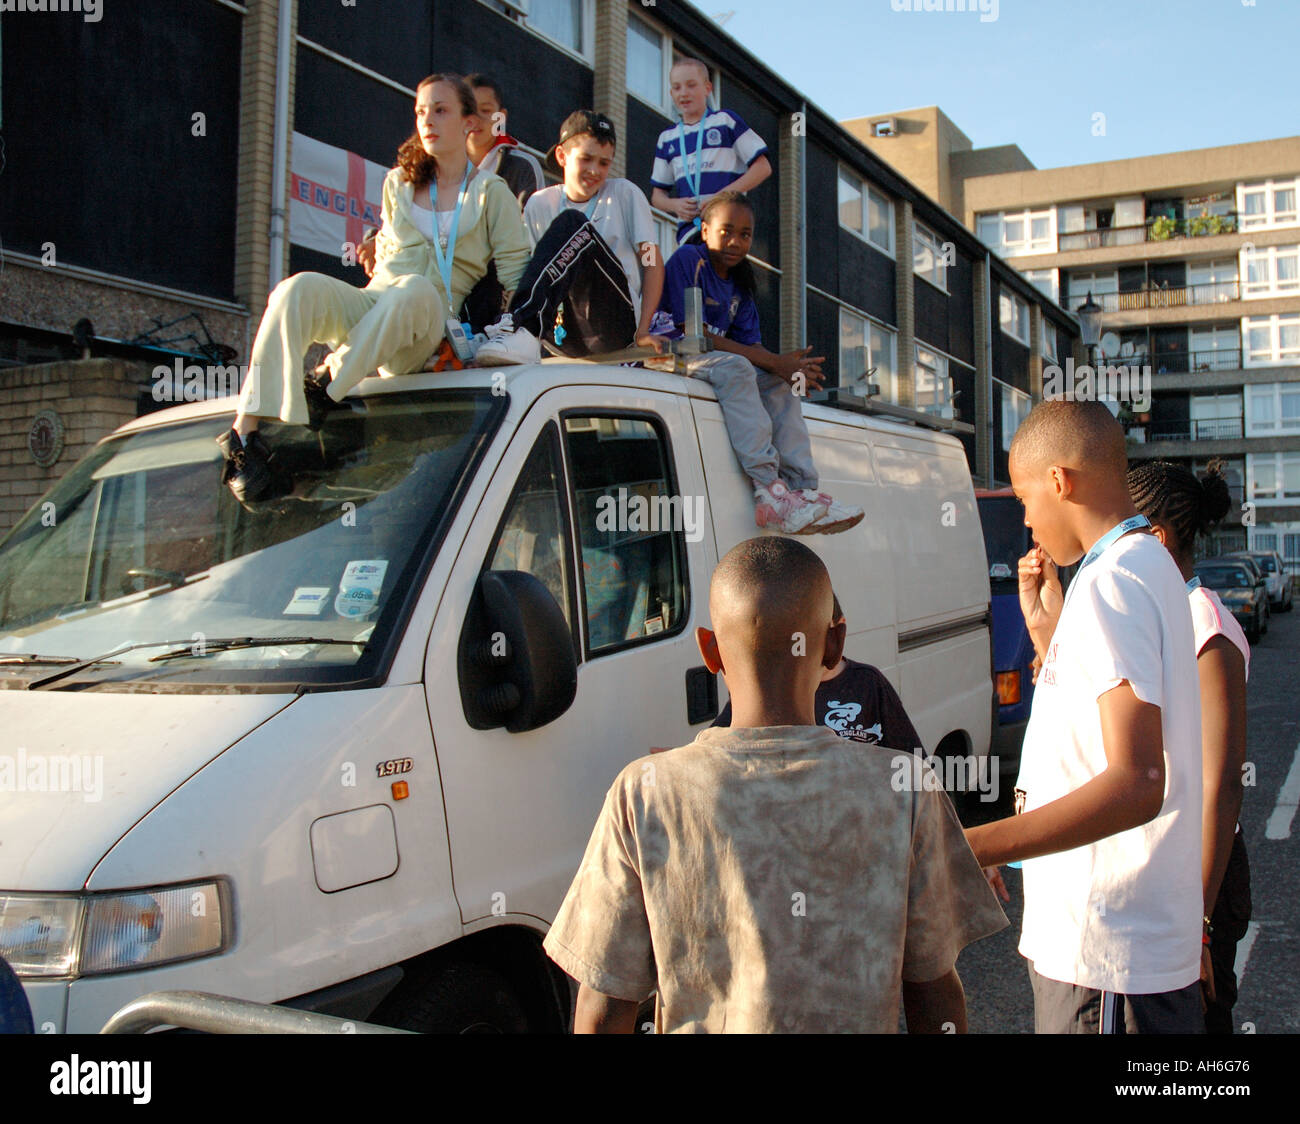 Lively group of children climbing and jumping on van parked on their housing estate in Kensal Green West London. - Stock Image